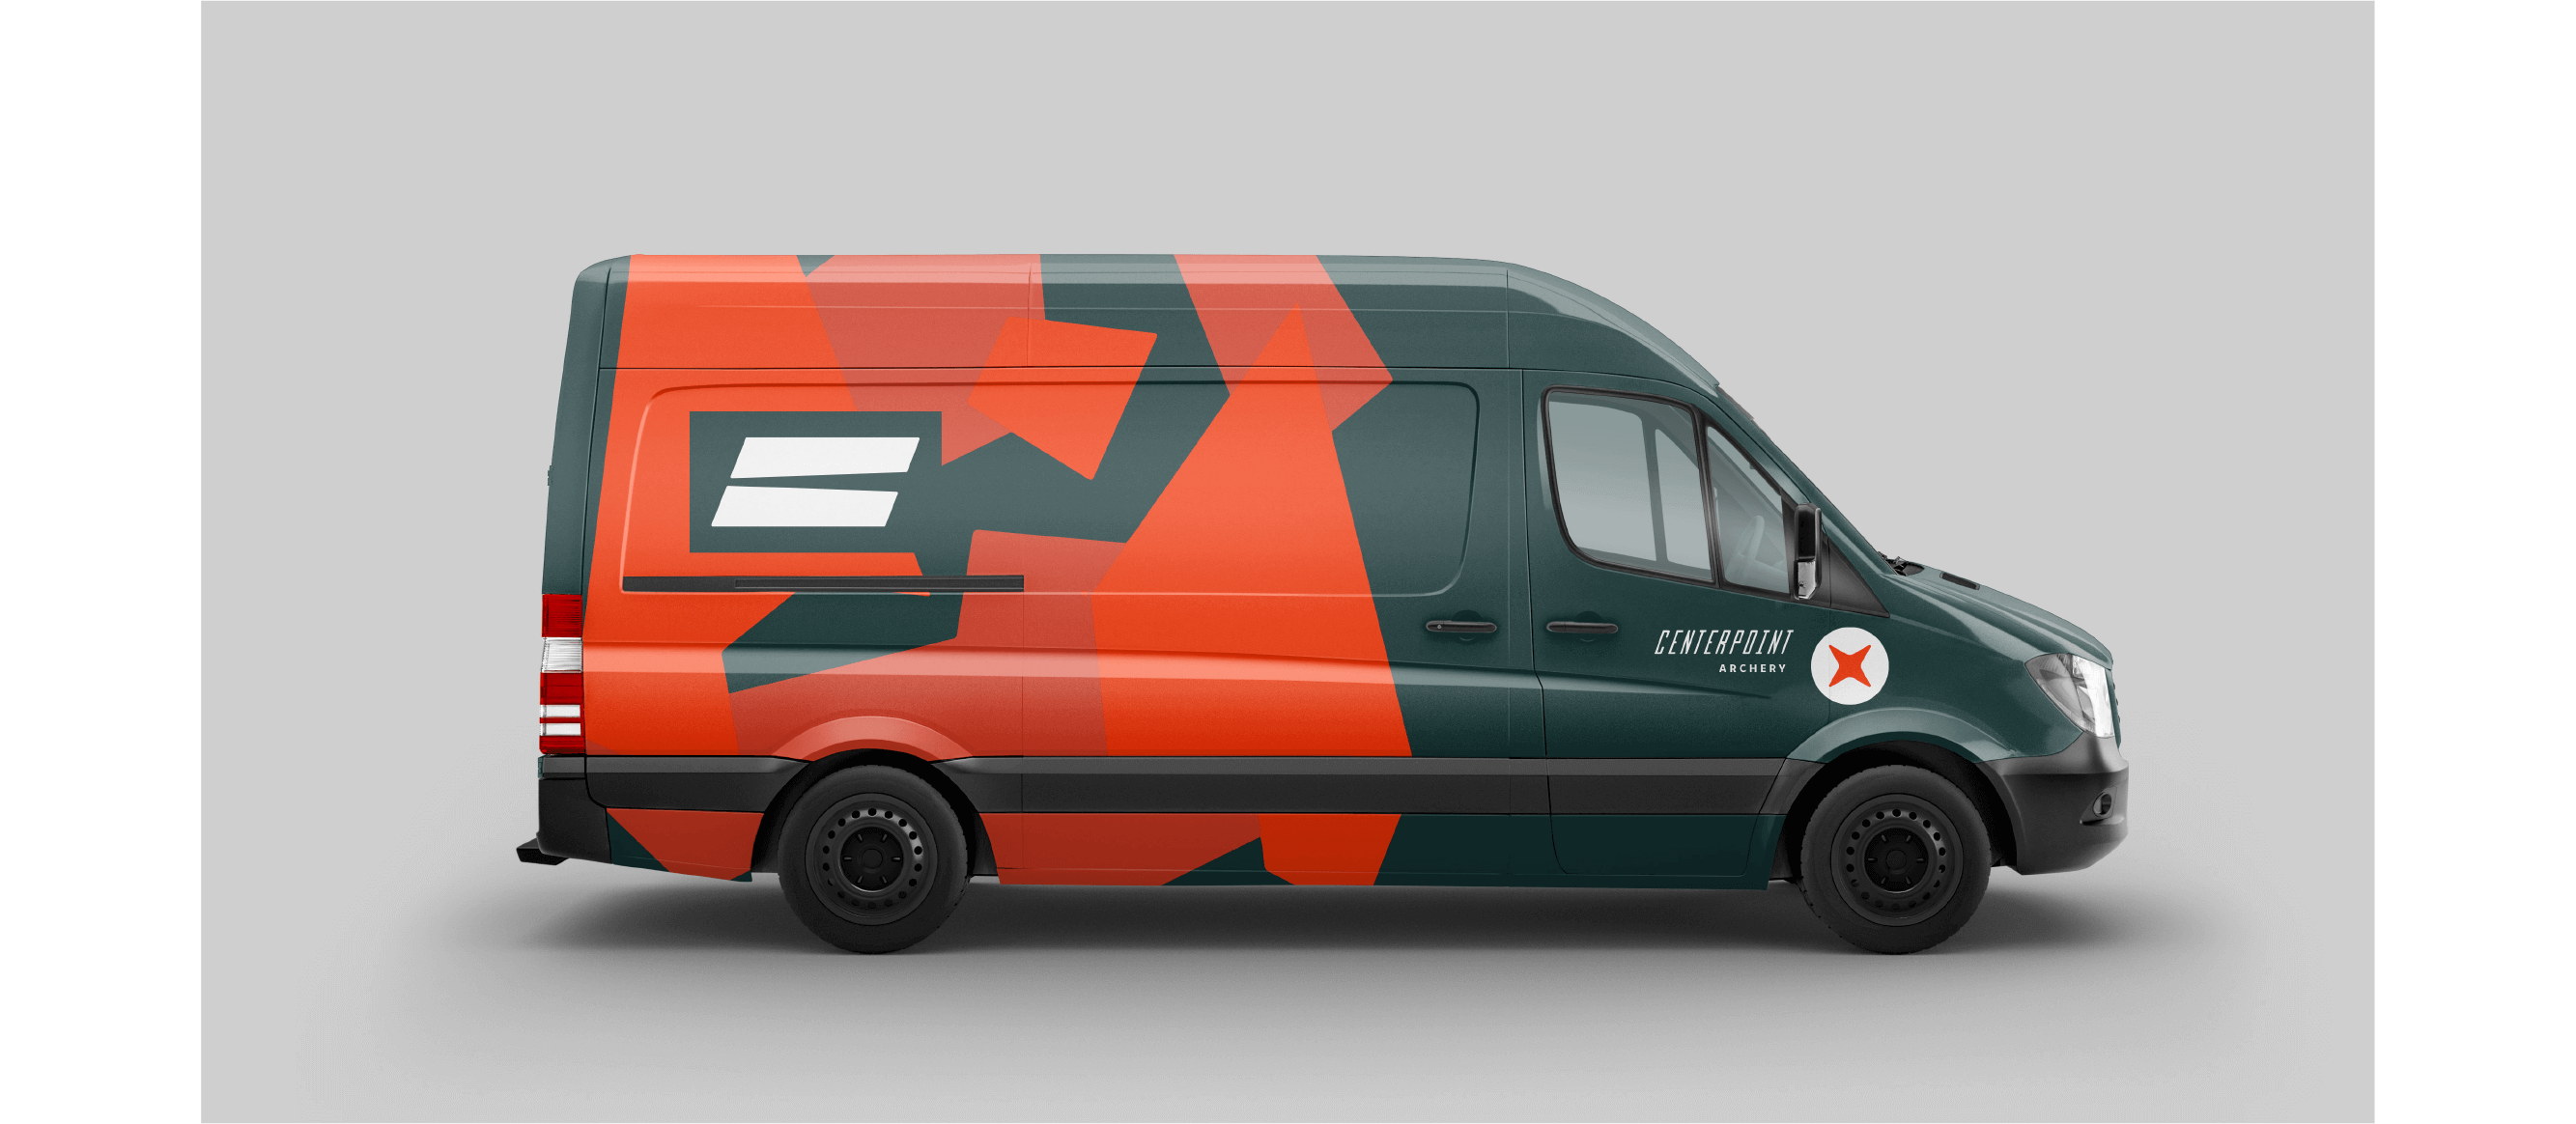 centerpoint-identity-branding-visual-direction-vehicle-07